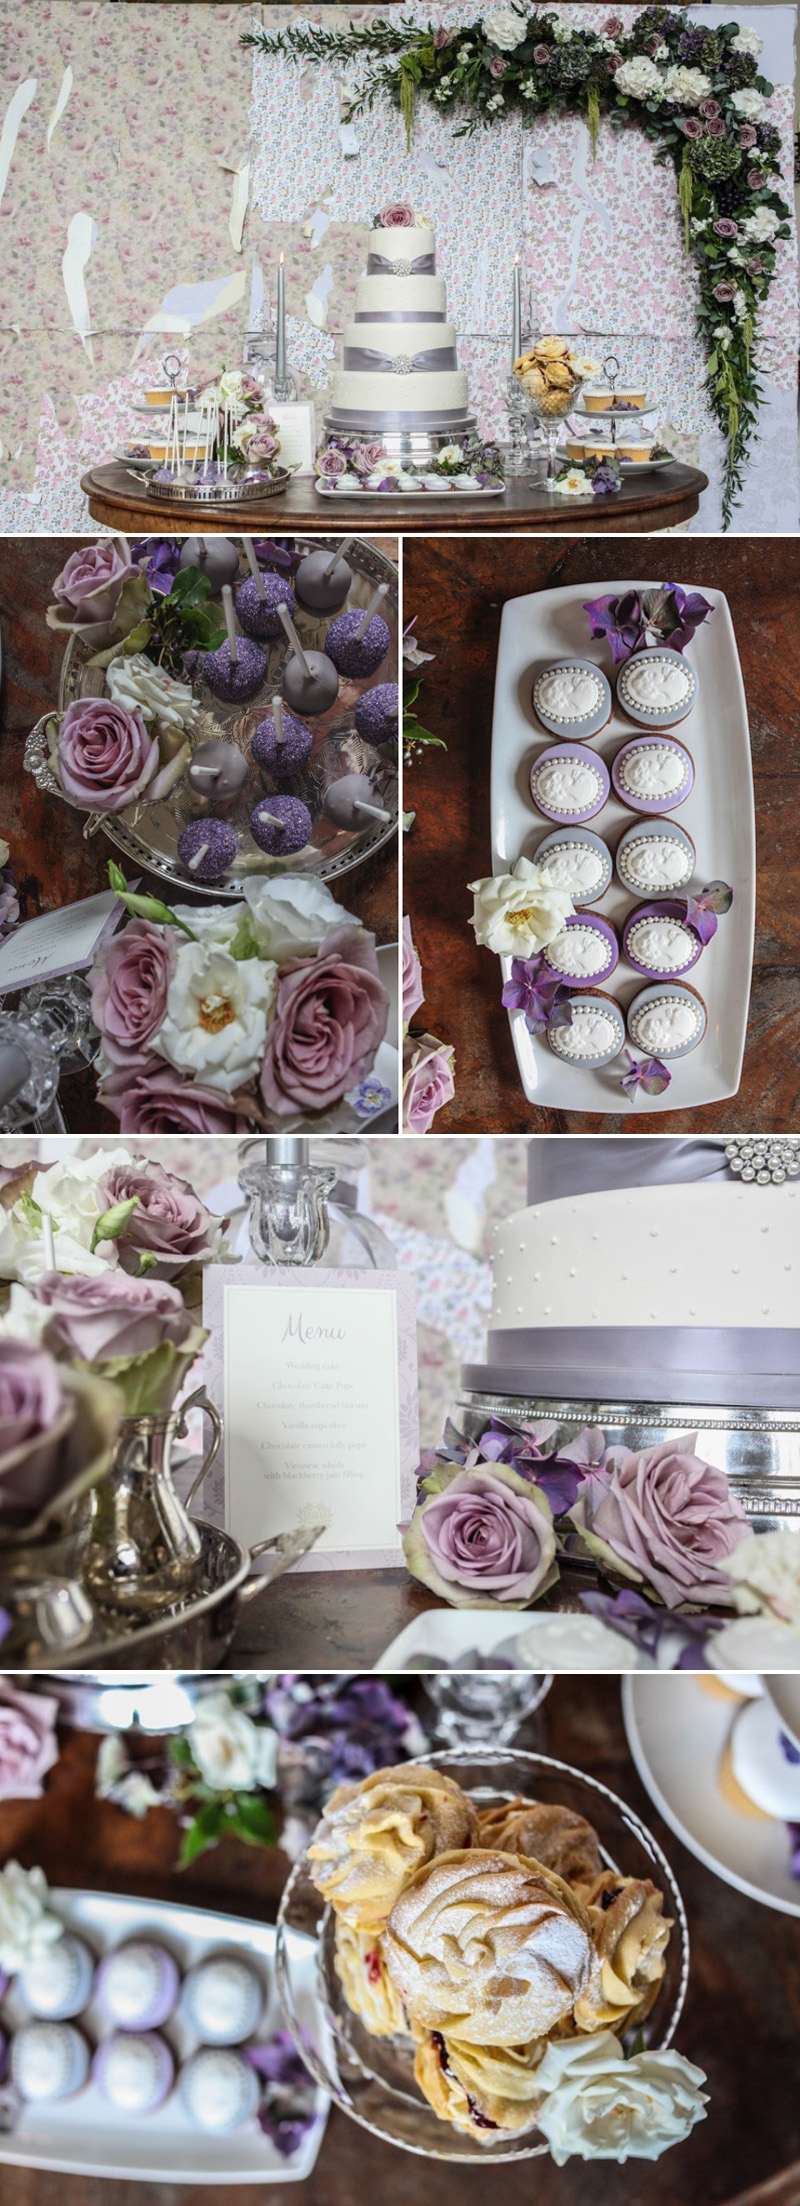 Coco Wedding Venues - Loved by Coco - Lavender and Linen - Images by Fig Photography.